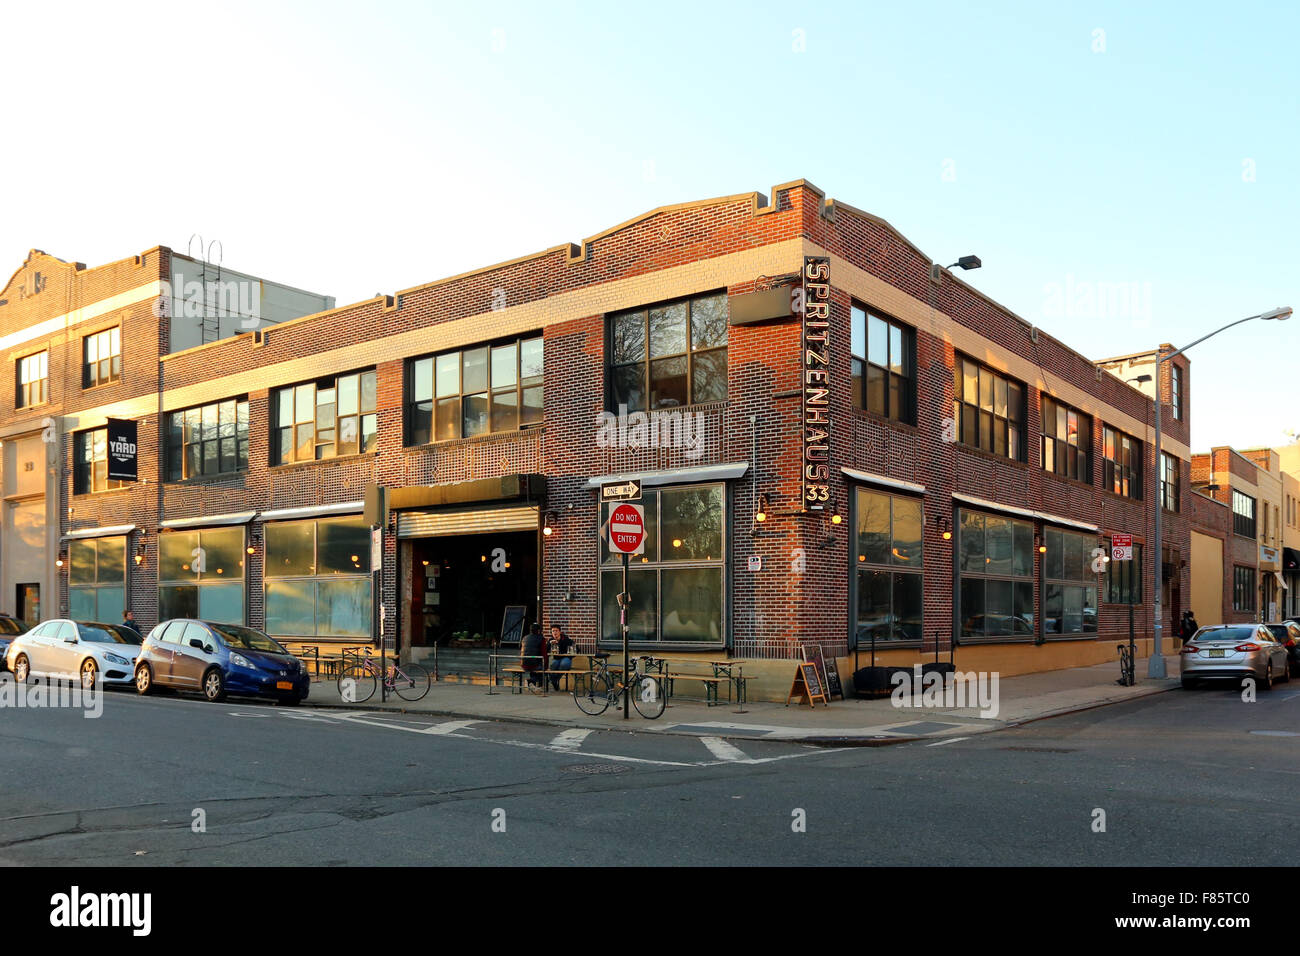 Beer Hall Stock Photos & Beer Hall Stock Images - Alamy